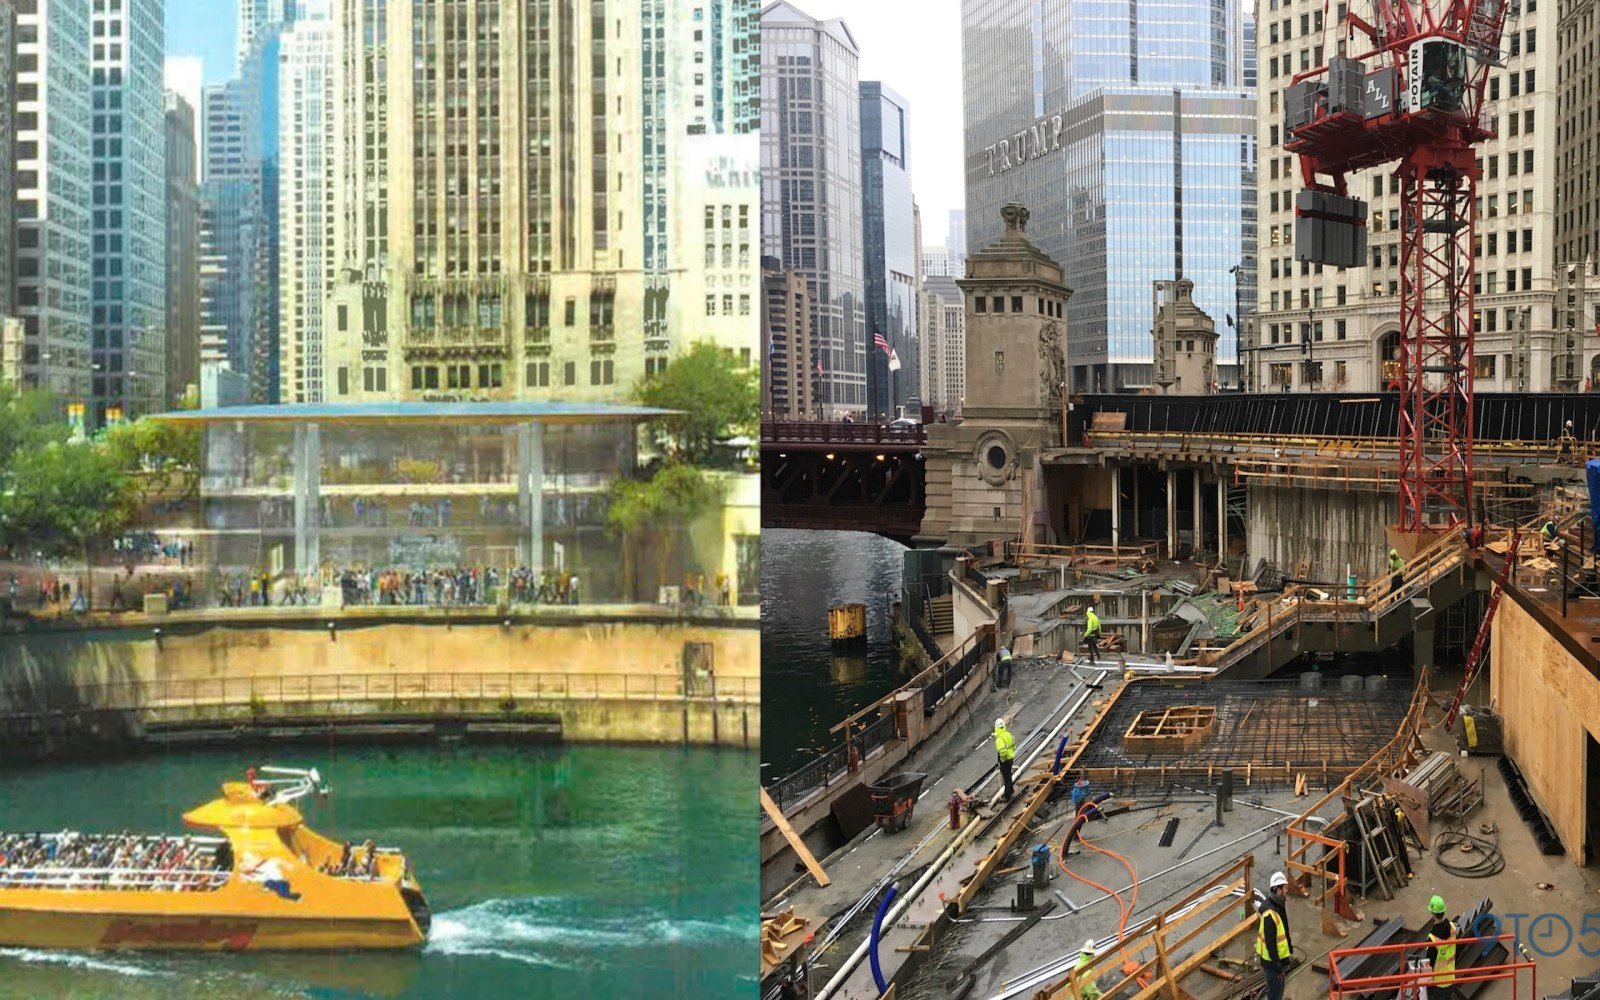 Apple's new stunning flagship waterfront retail store in Chicago begins to take shape [Gallery]